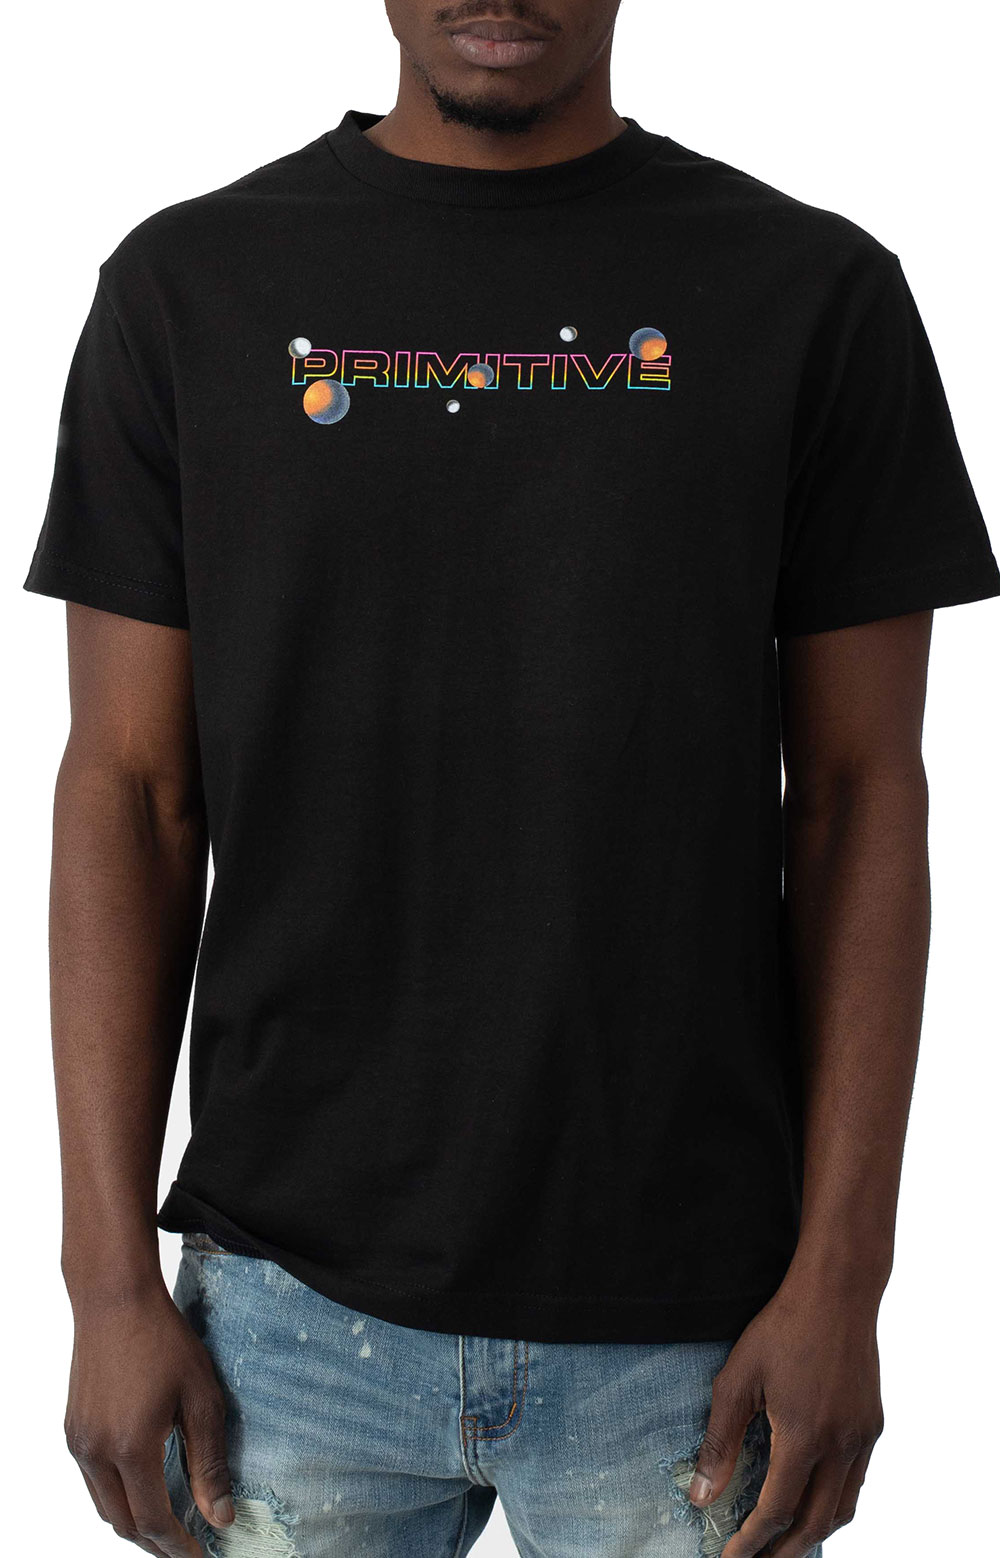 Dirty P Particles T-Shirt - Black 2